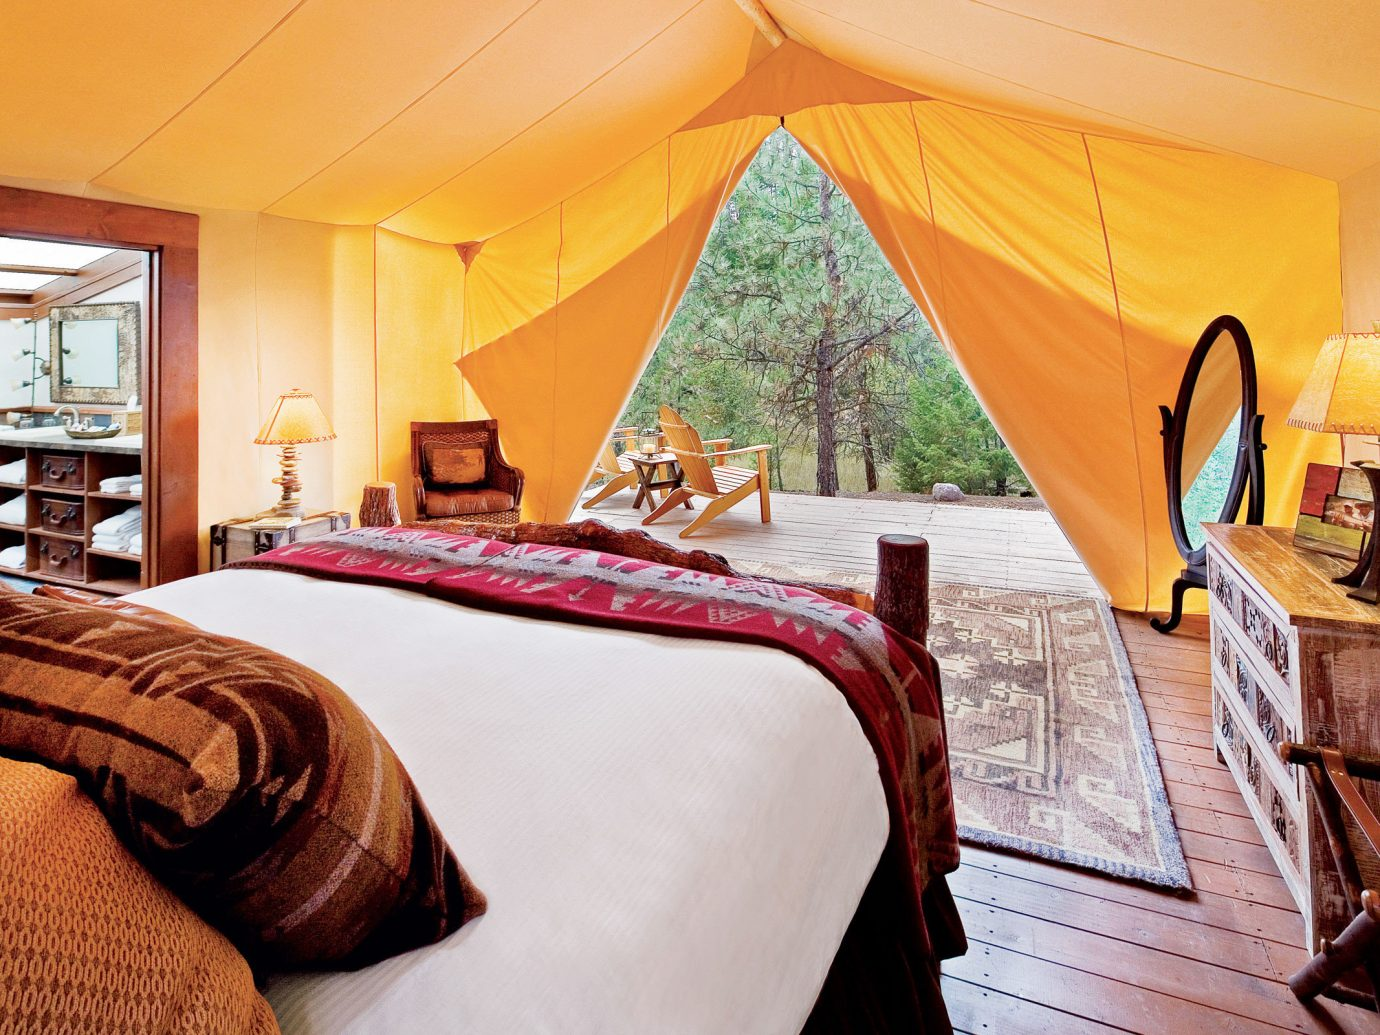 Glamping Hotels Luxury Travel Outdoors + Adventure Trip Ideas indoor room bed Suite Bedroom estate Resort interior design hotel bed sheet cottage furniture